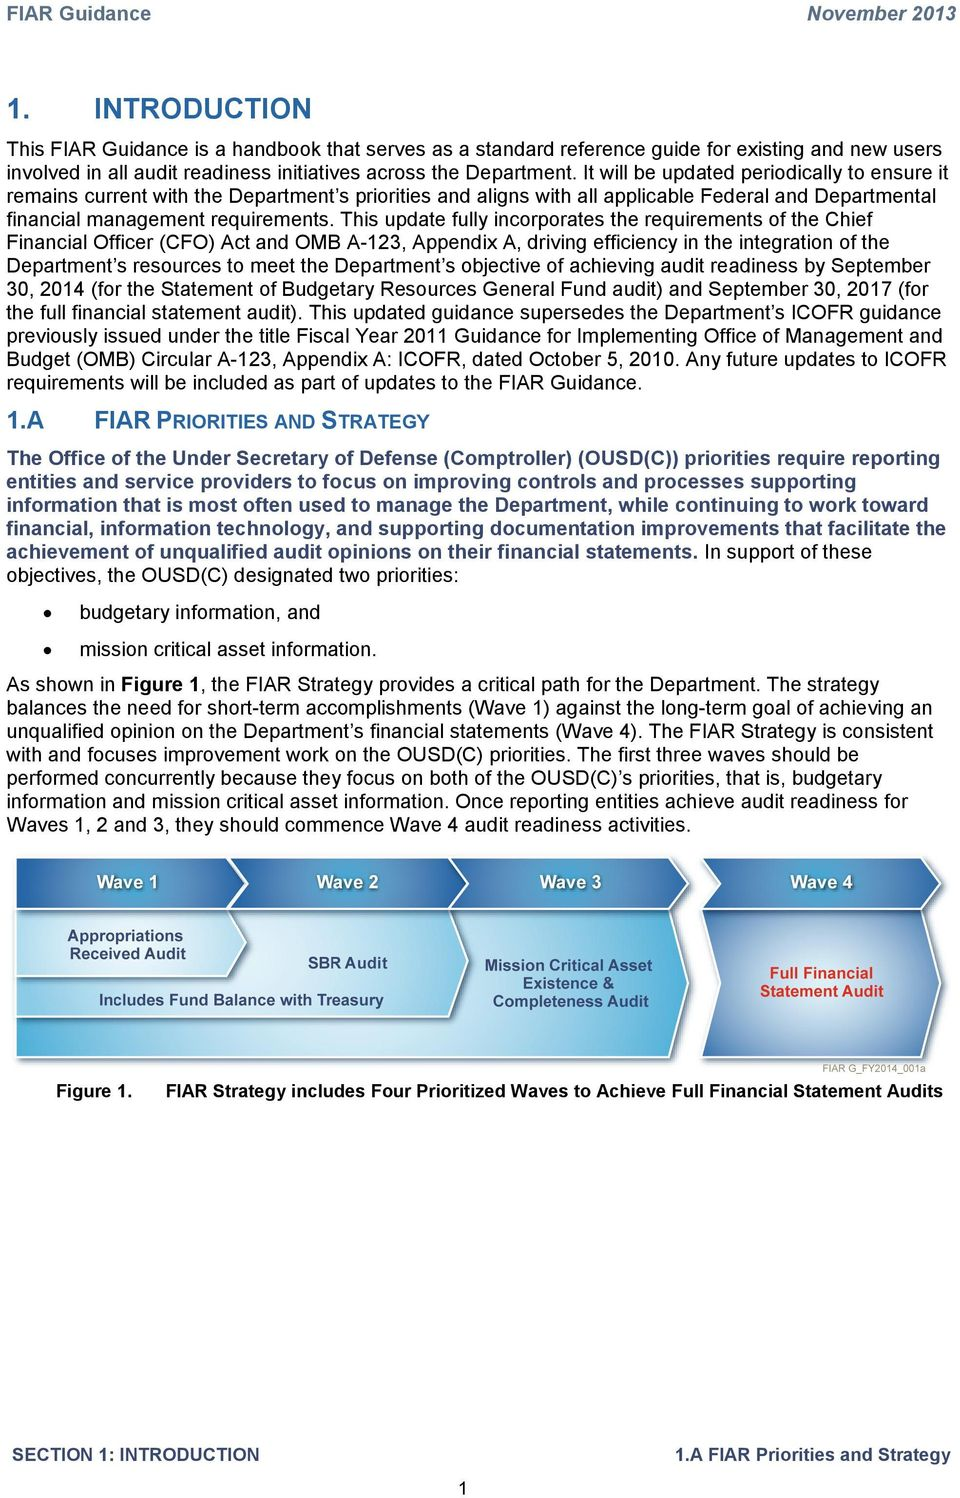 FINANCIAL IMPROVEMENT AND AUDIT READINESS (FIAR) GUIDANCE - PDF